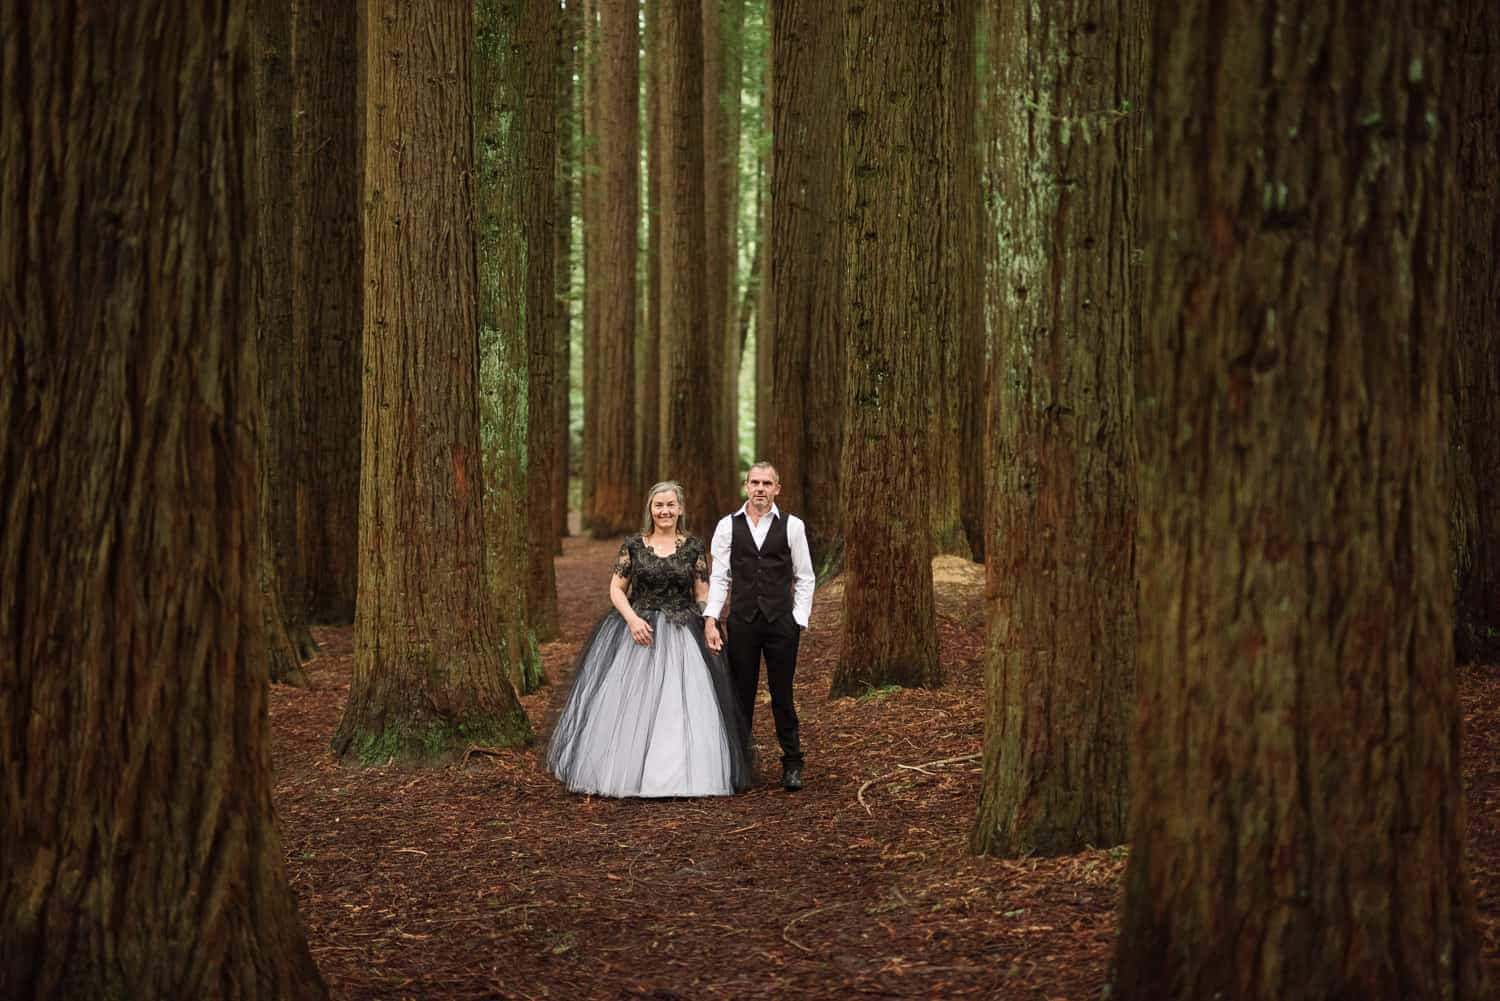 Bride and groom in the Otways Redwoods during their wedding portraits